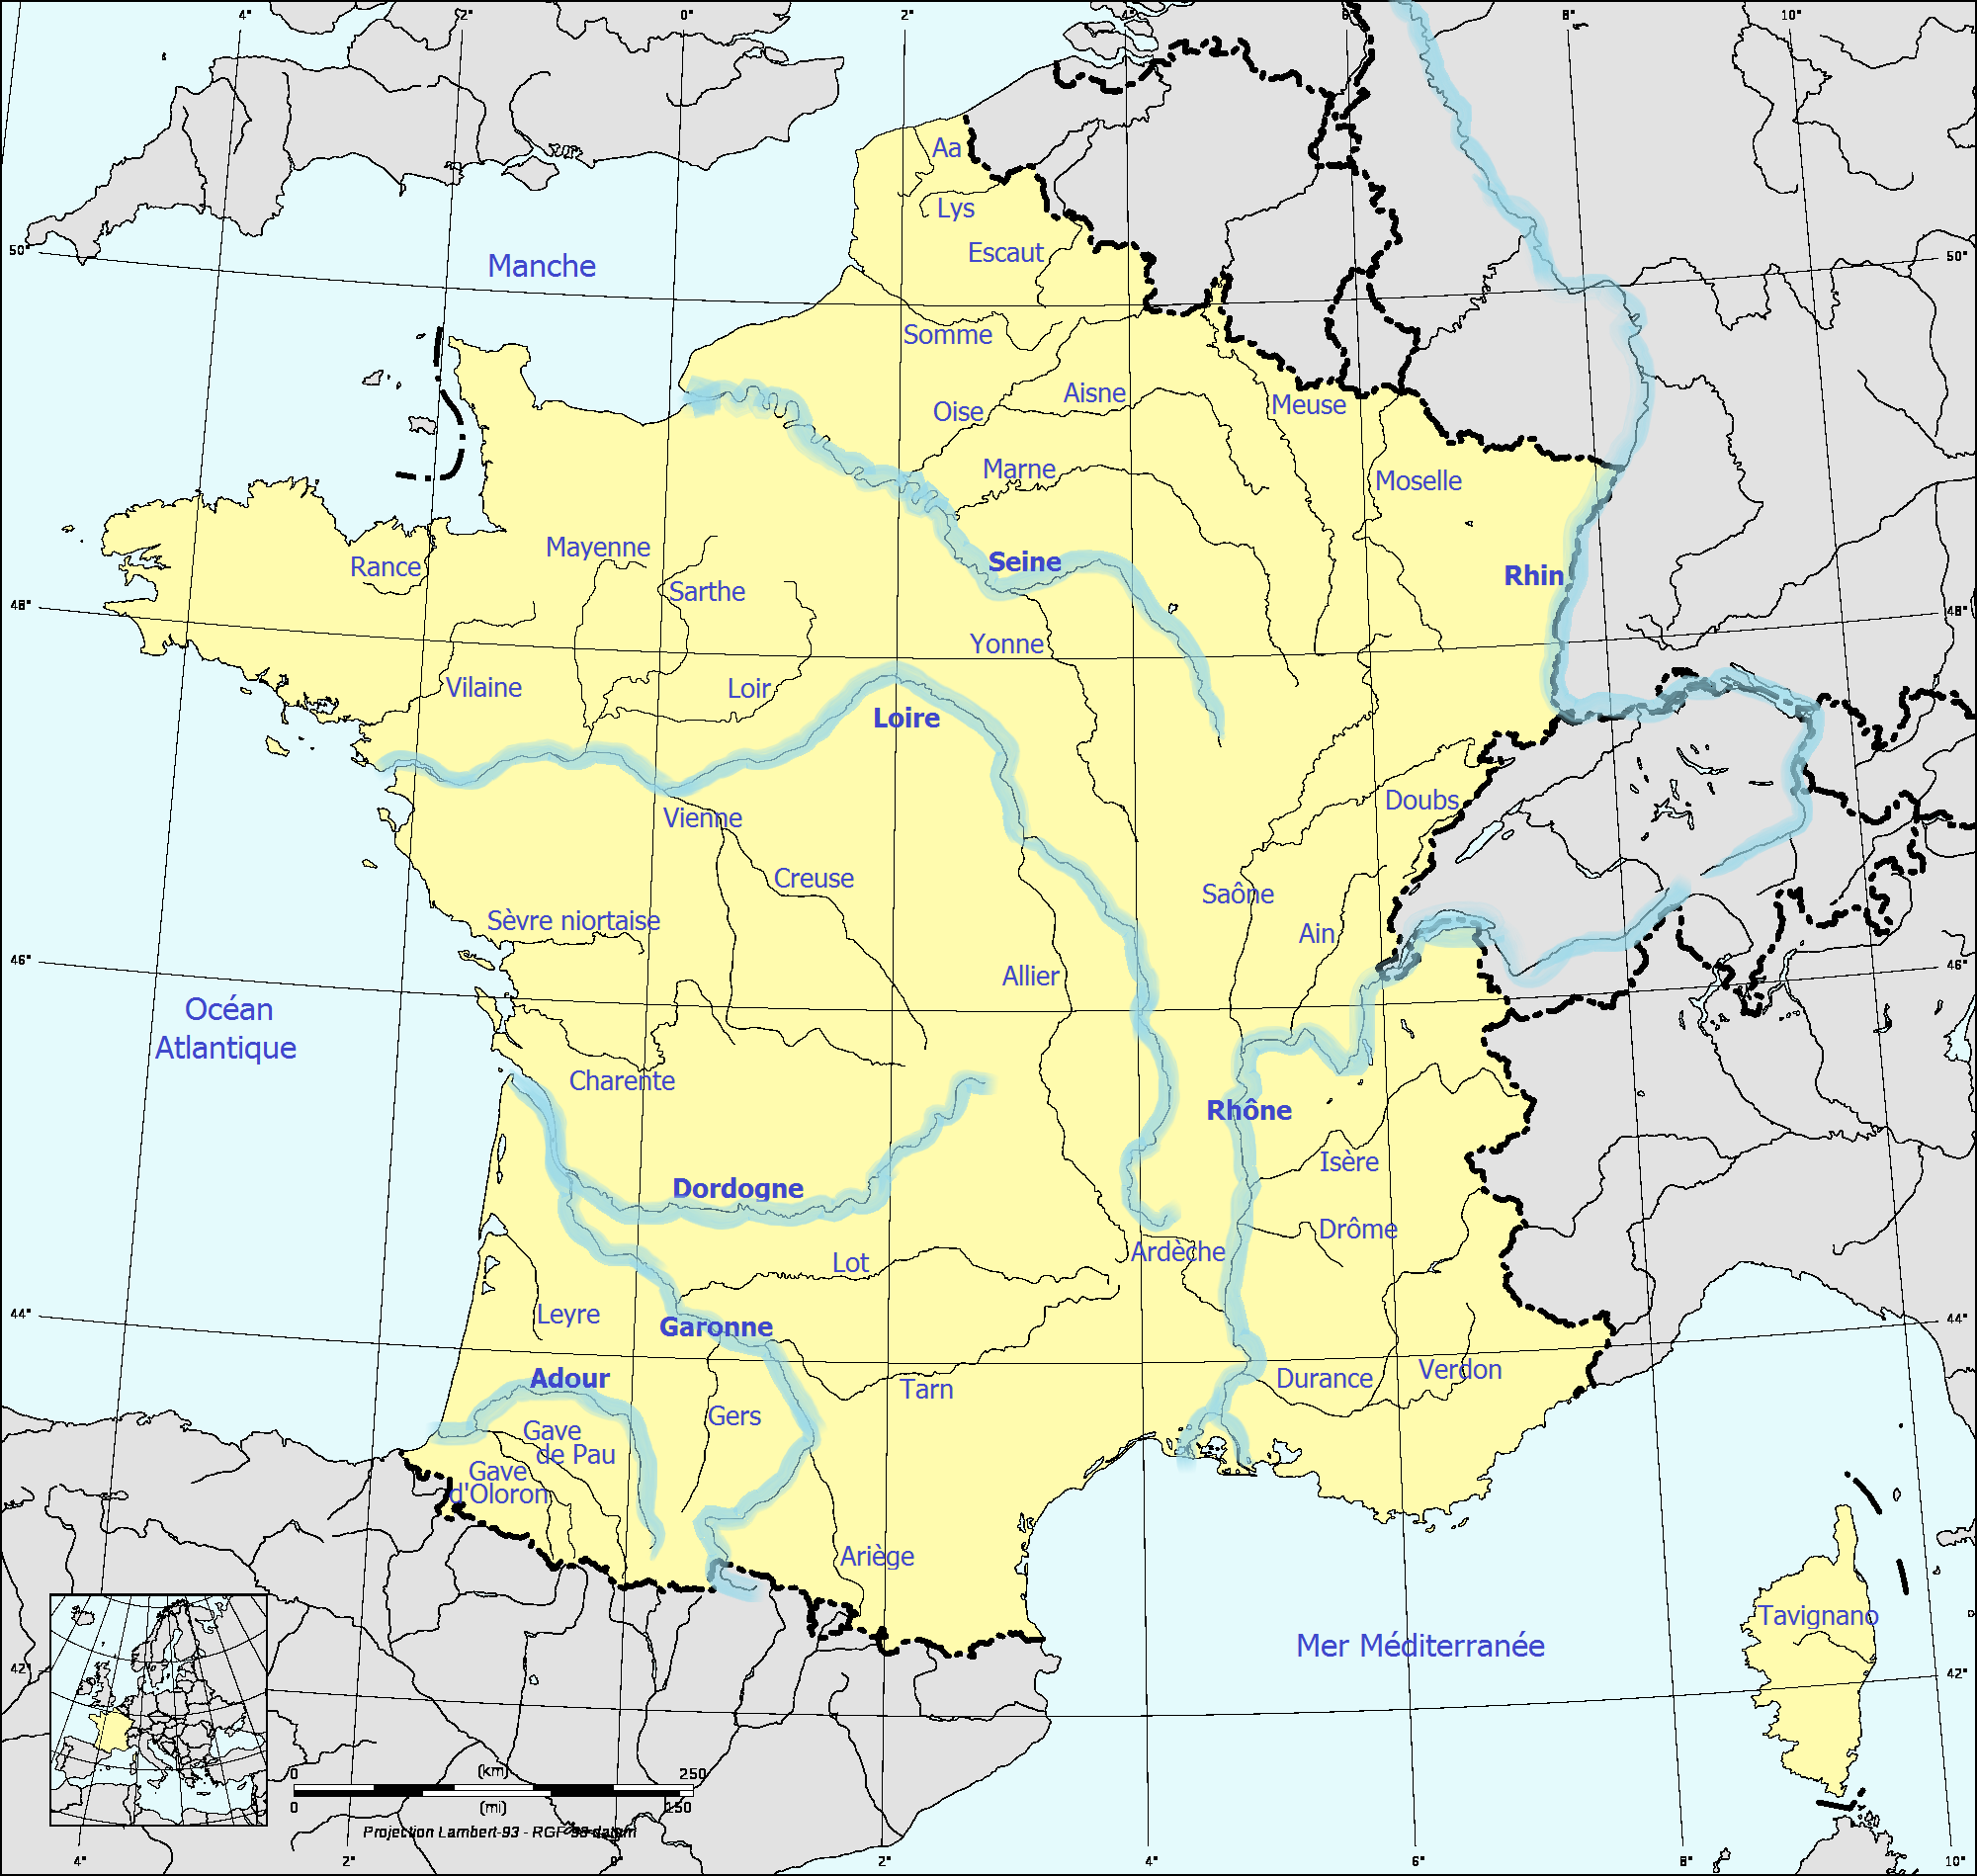 carte cours d eau france File:France fluvial.png   Wikimedia Commons